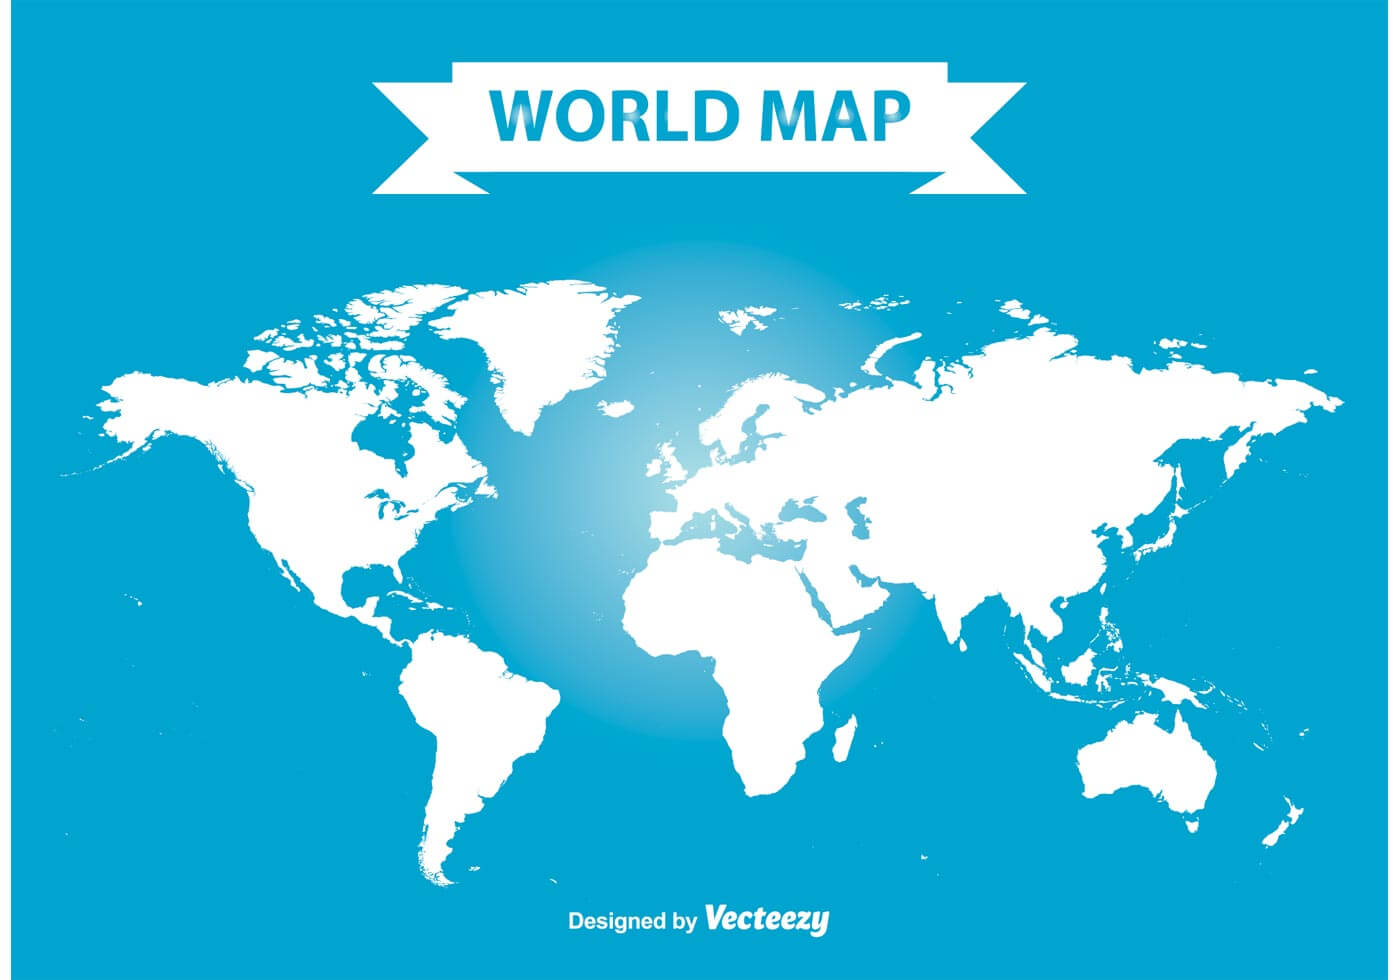 World map free tiredriveeasy 25 free world map vectors and psds inspirationfeed gumiabroncs Images